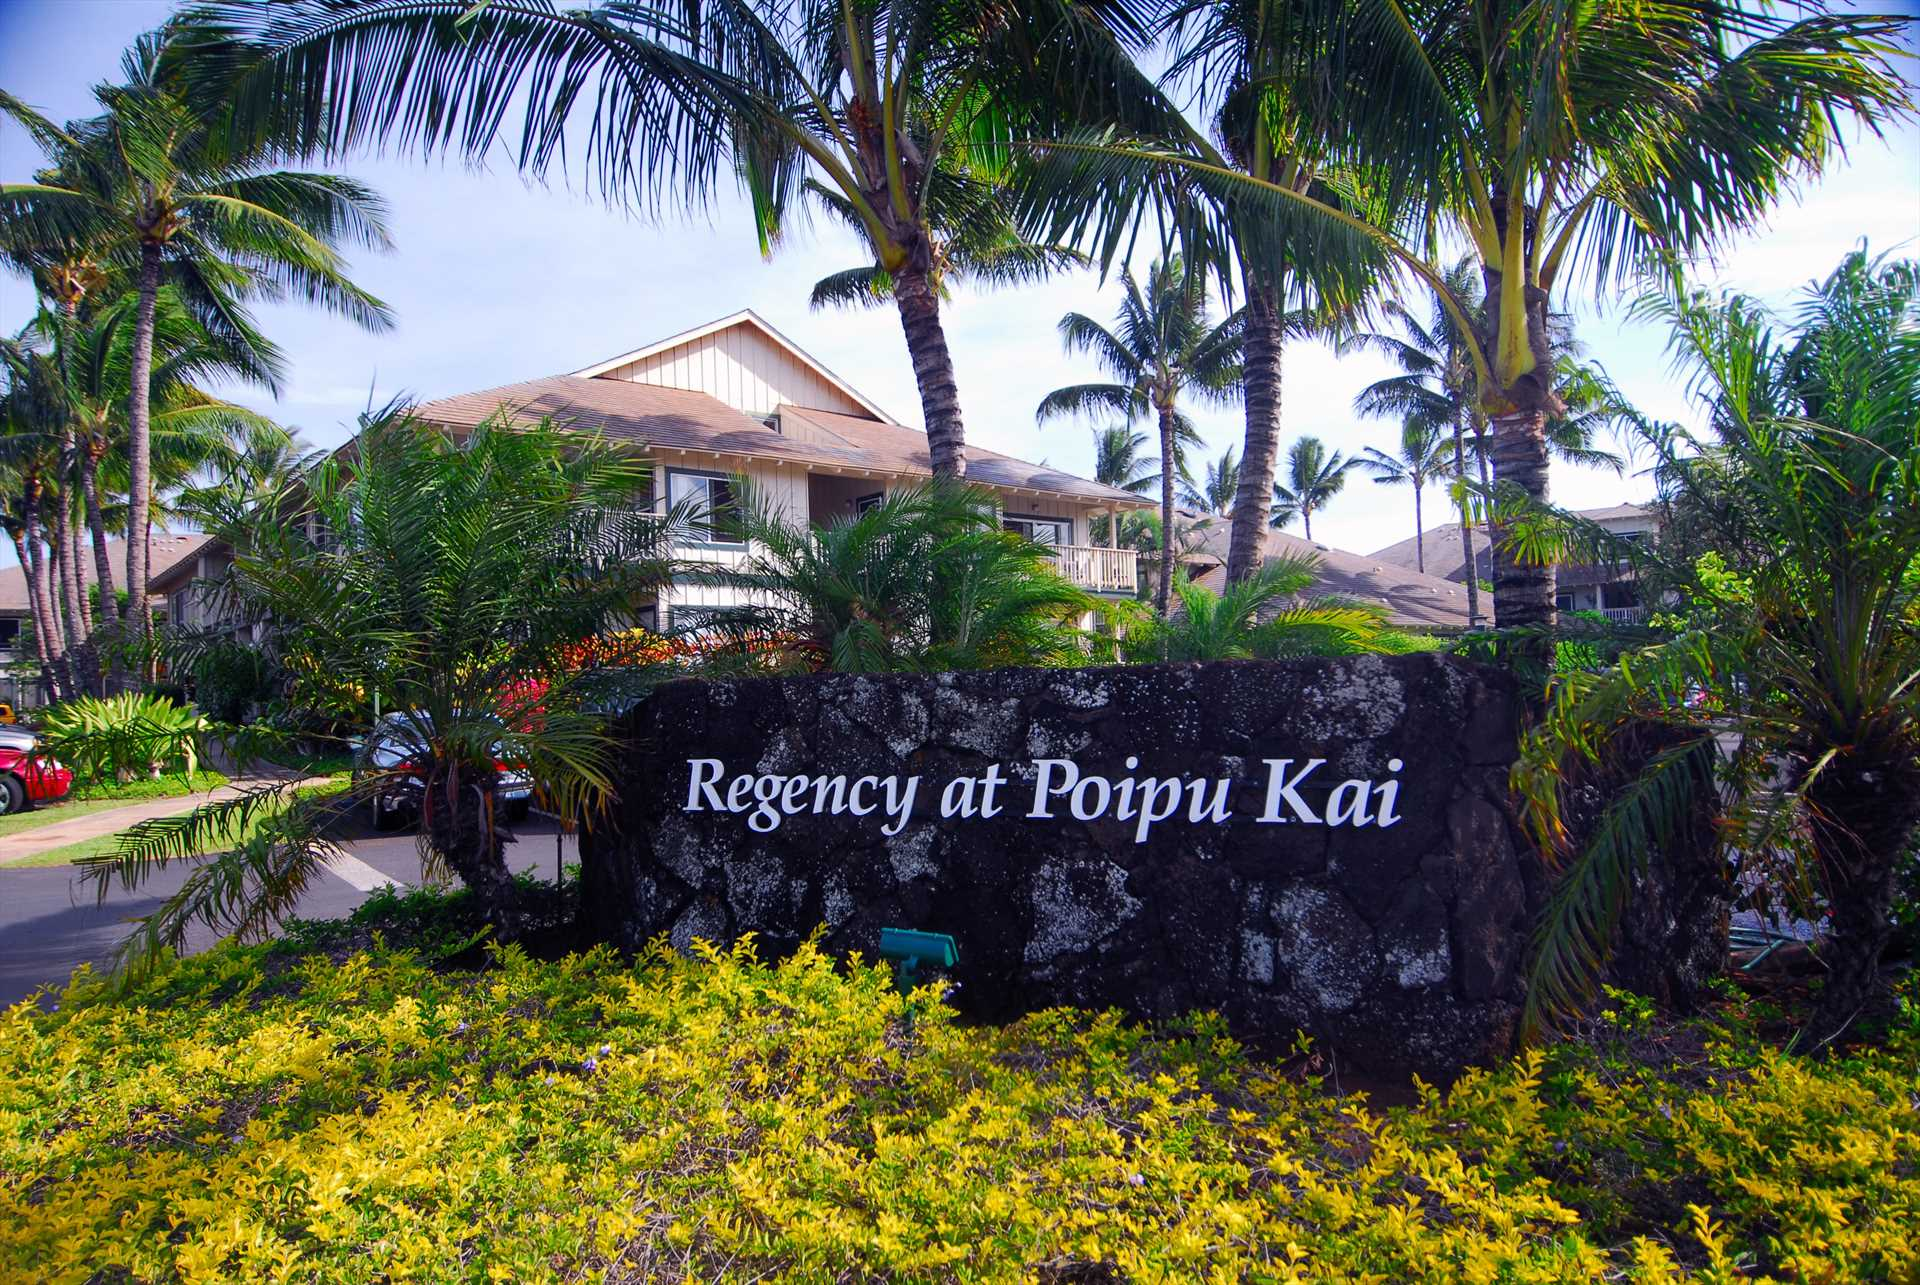 Entrance to Regency at Poipu Kai Resort